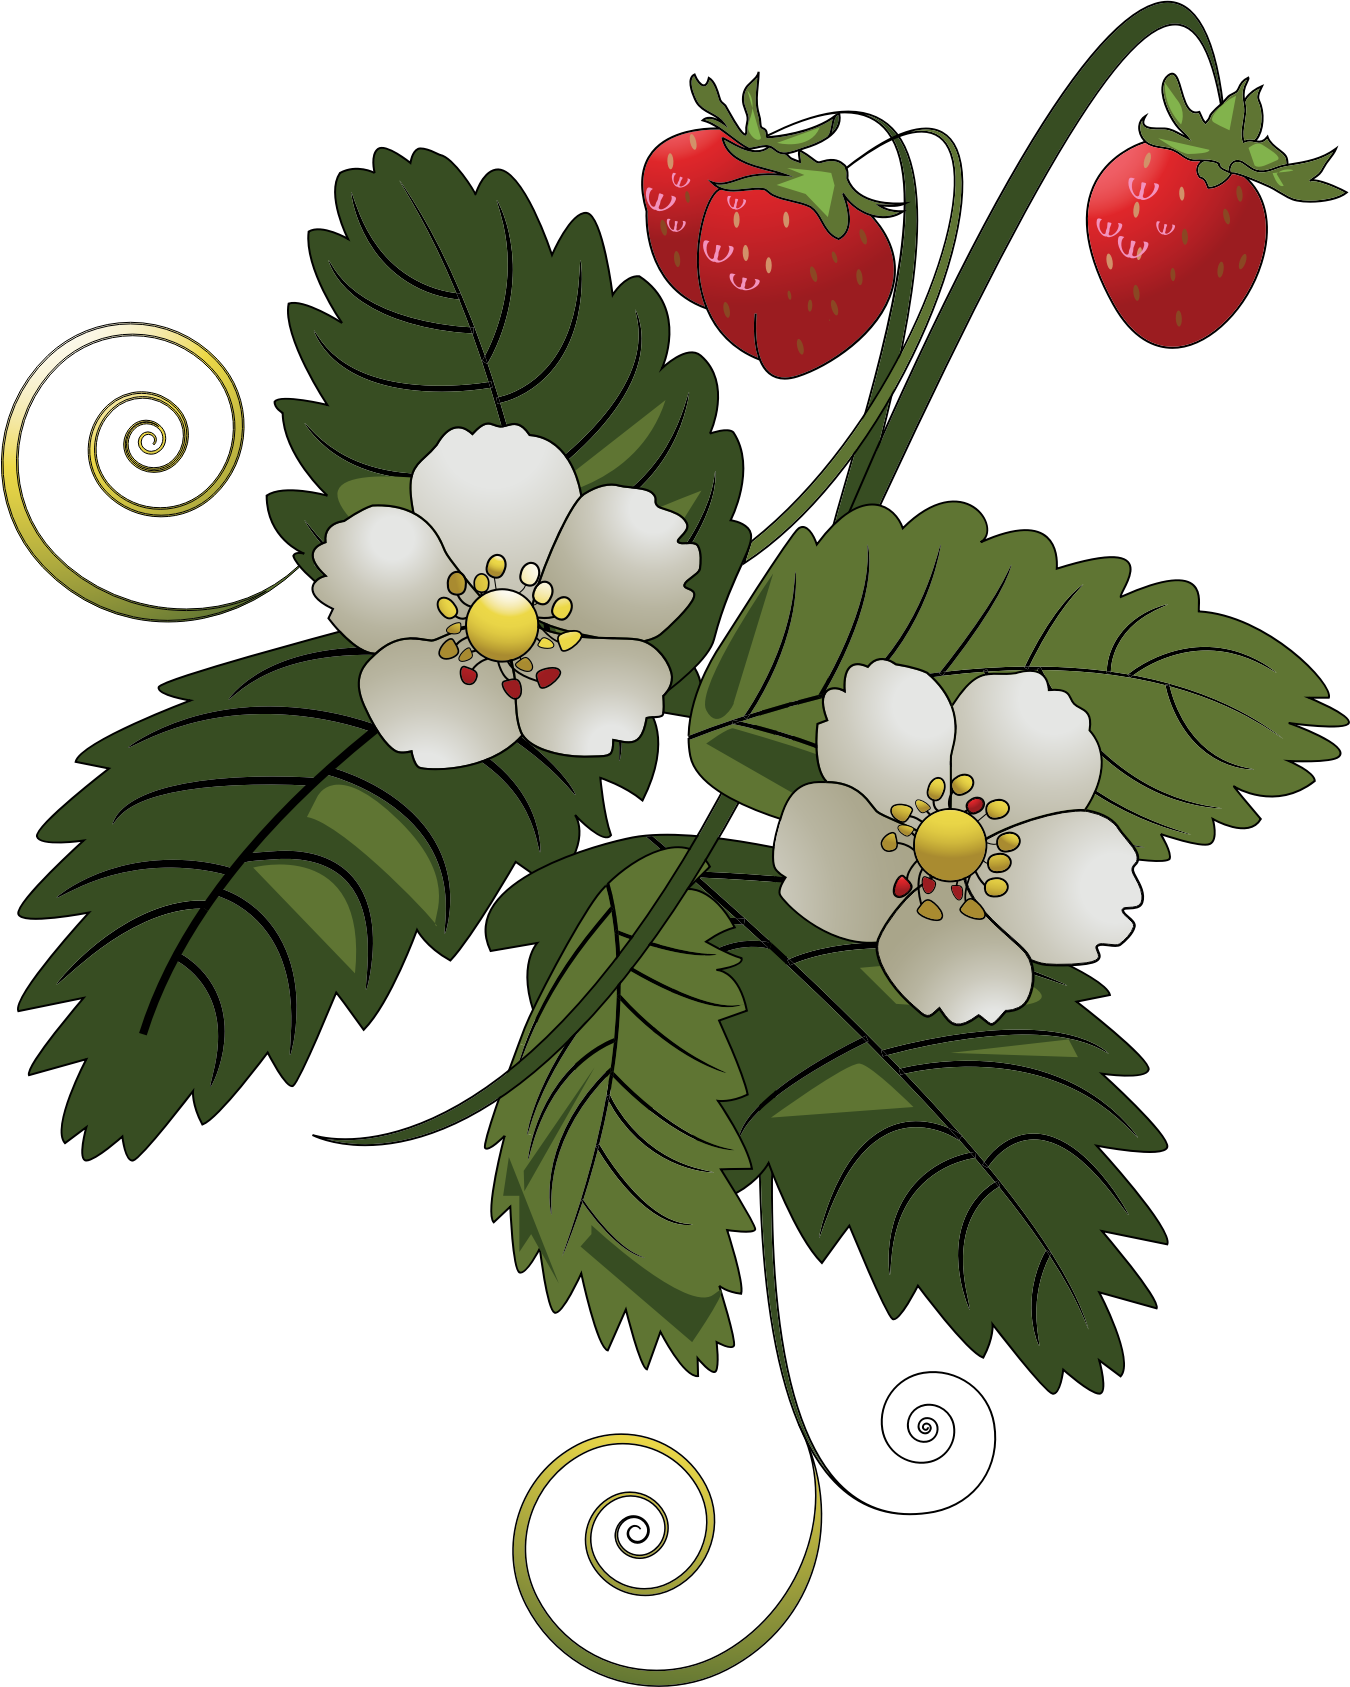 Strawberry plants clipart - Clipground